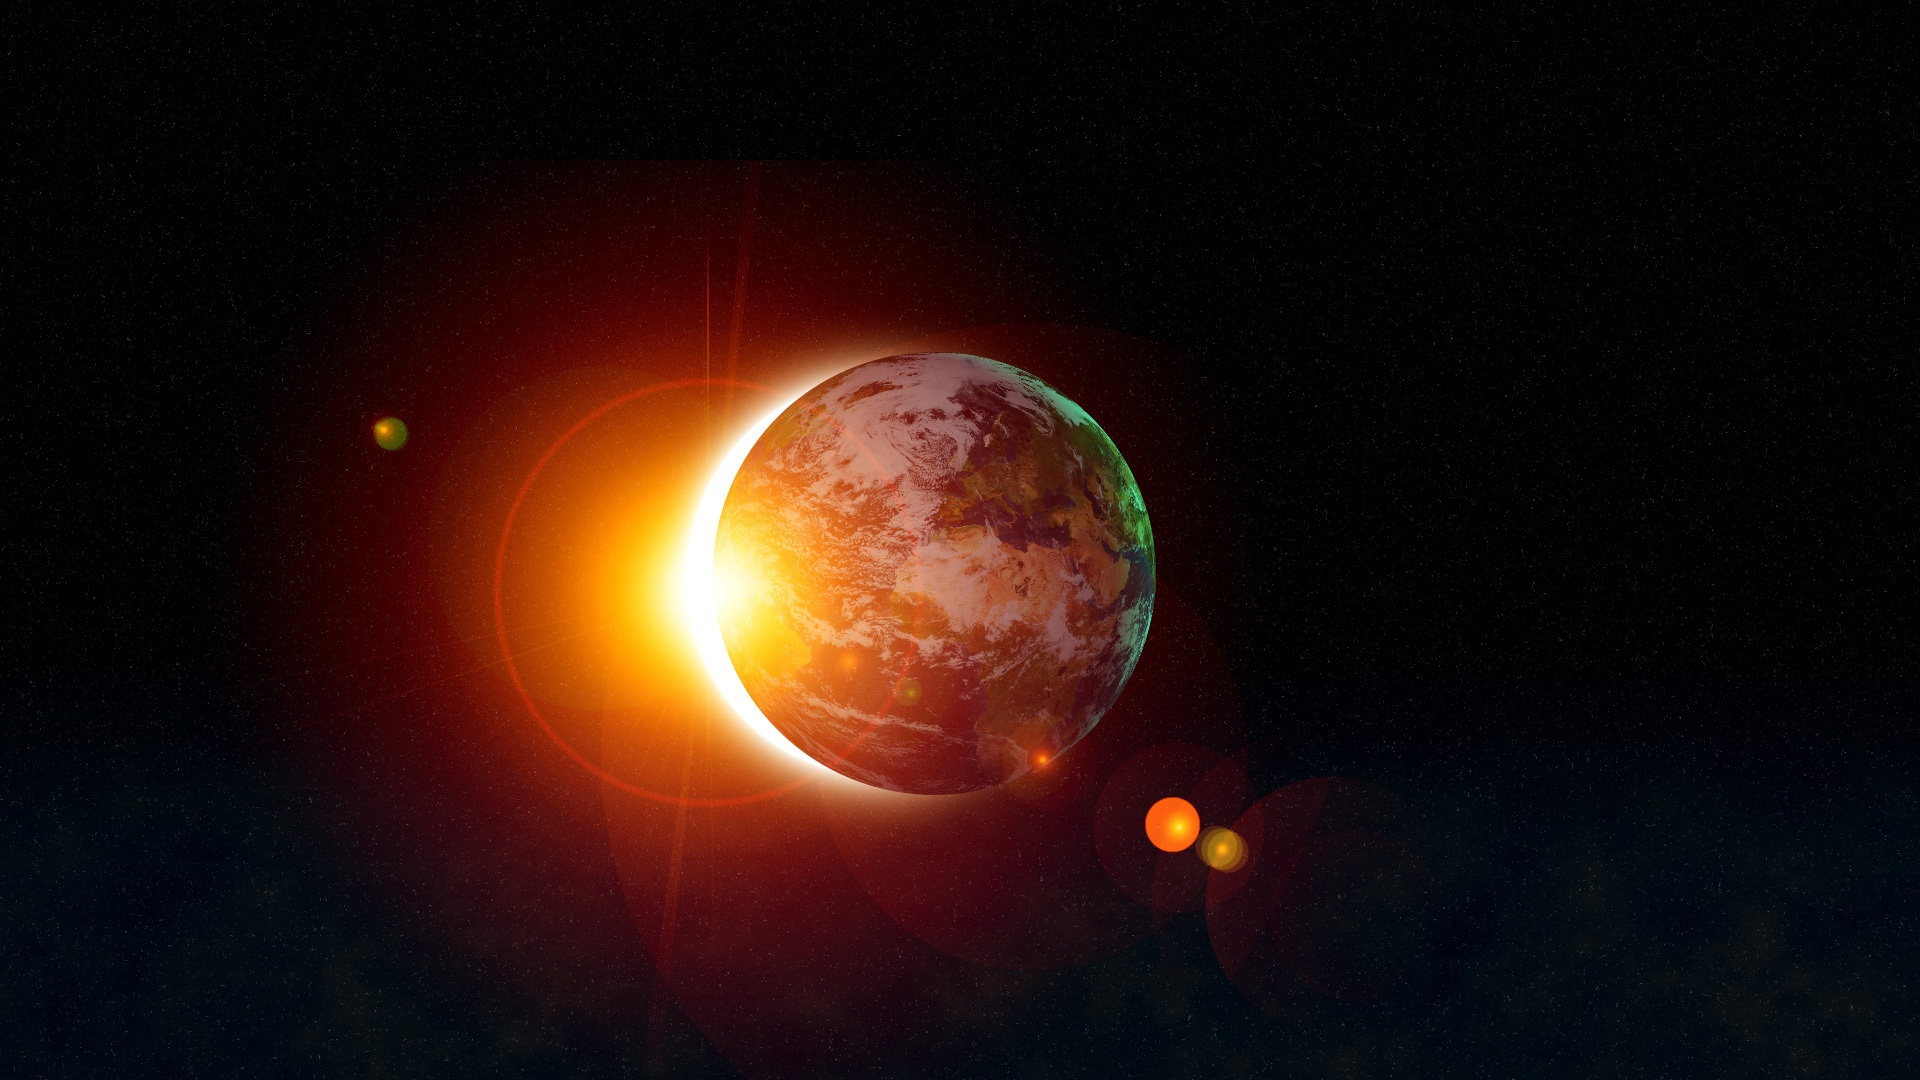 Eclipse Wallpapers Hd Backgrounds 70 images in Collection Page 1 1920x1080